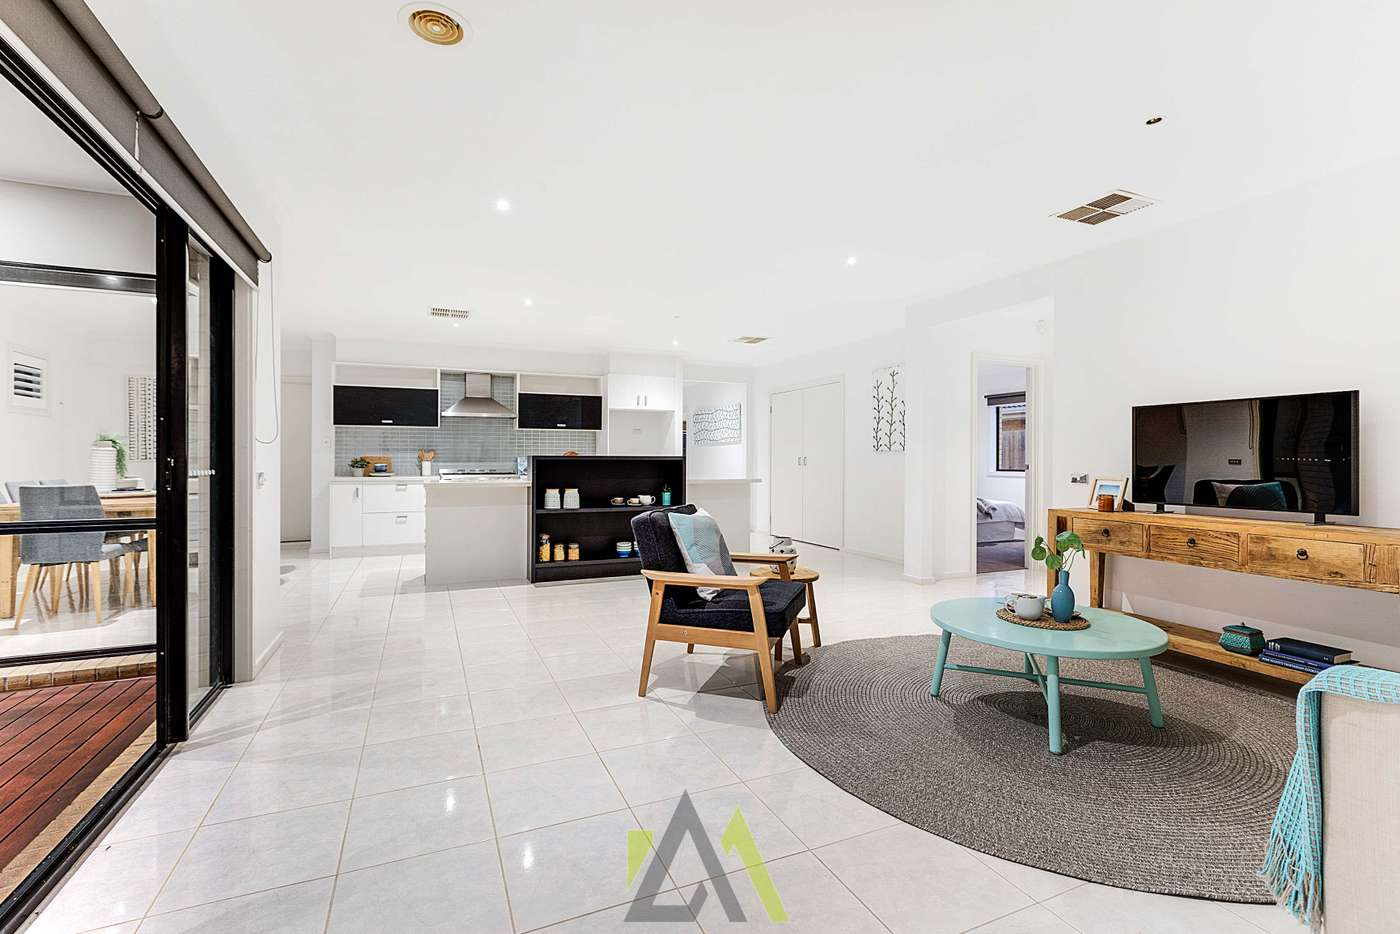 Fifth view of Homely house listing, 13 Cleopatra Drive, Cranbourne VIC 3977